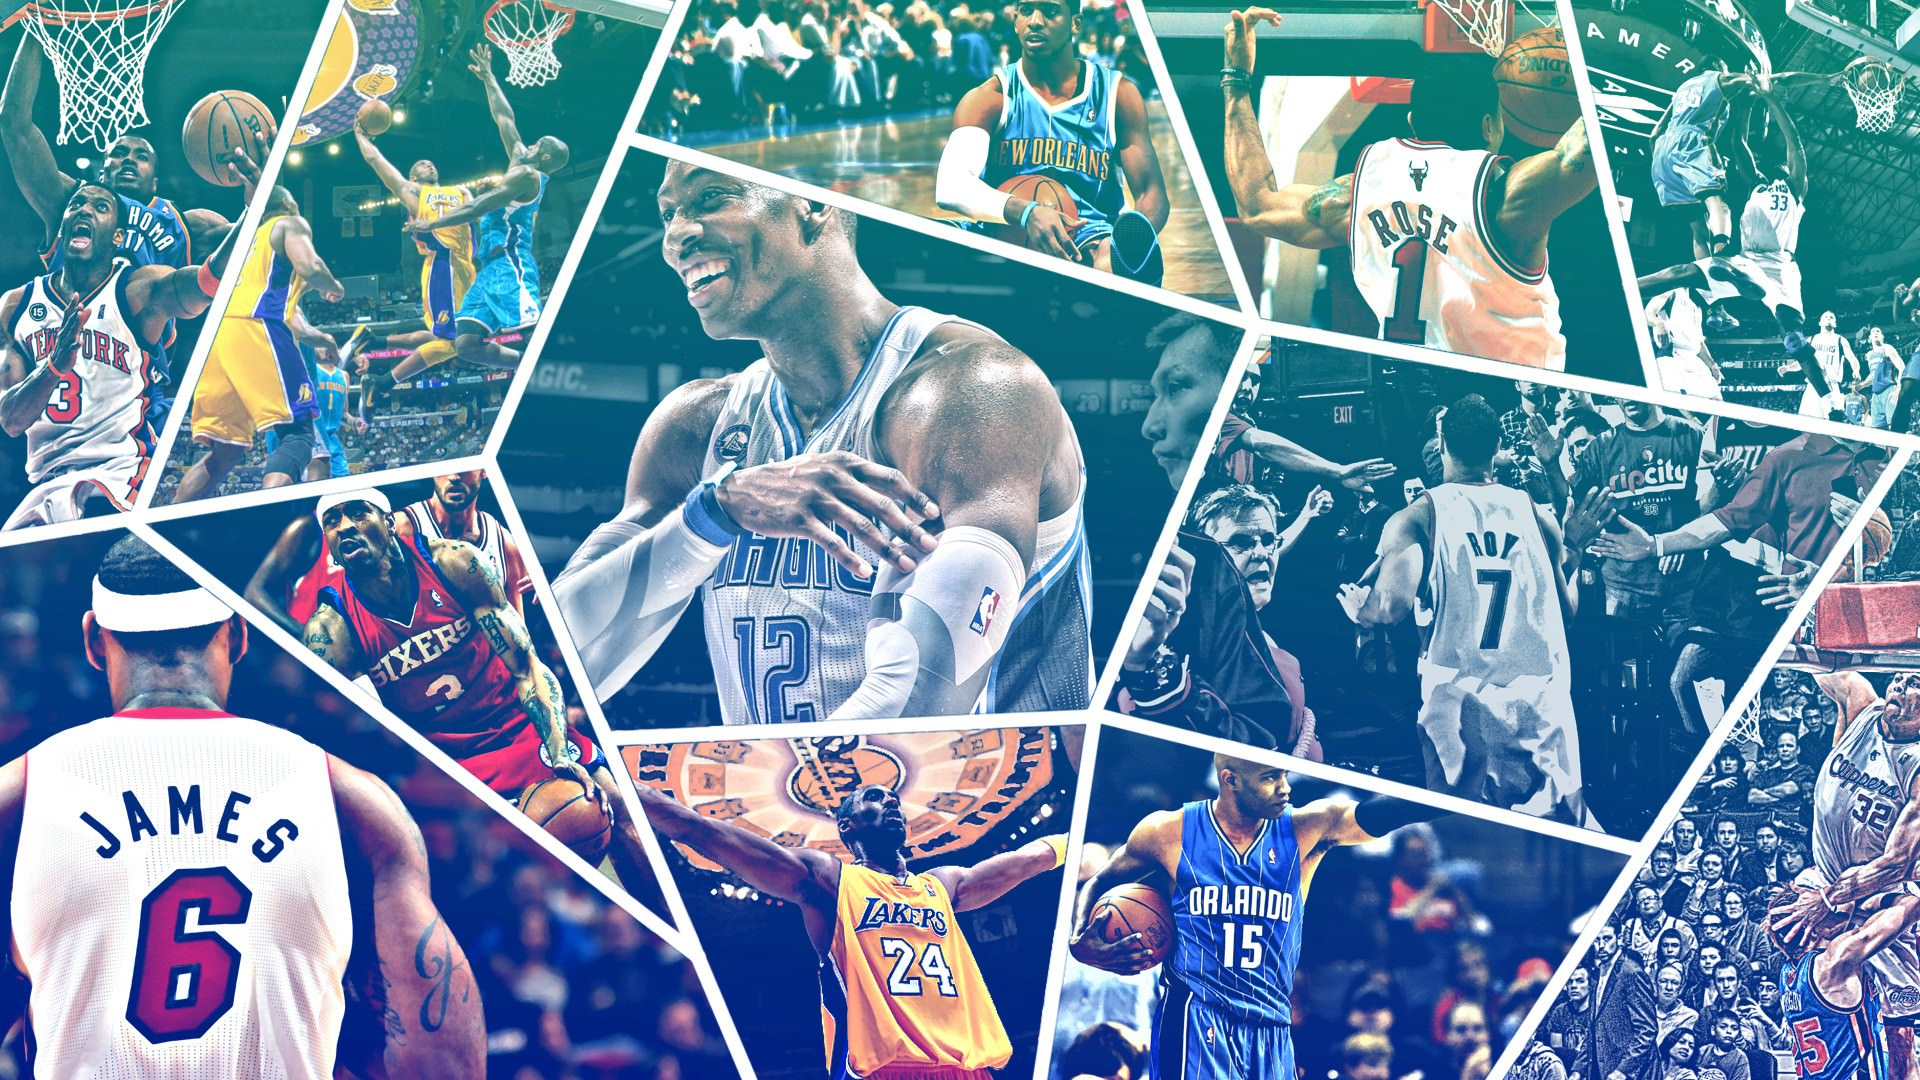 """1920x1080 50+ Nba wallpapers ·① Download free HD backgrounds for desktop ...""""> Download · 1920x1080 NBA Wallpapers HD ..."""